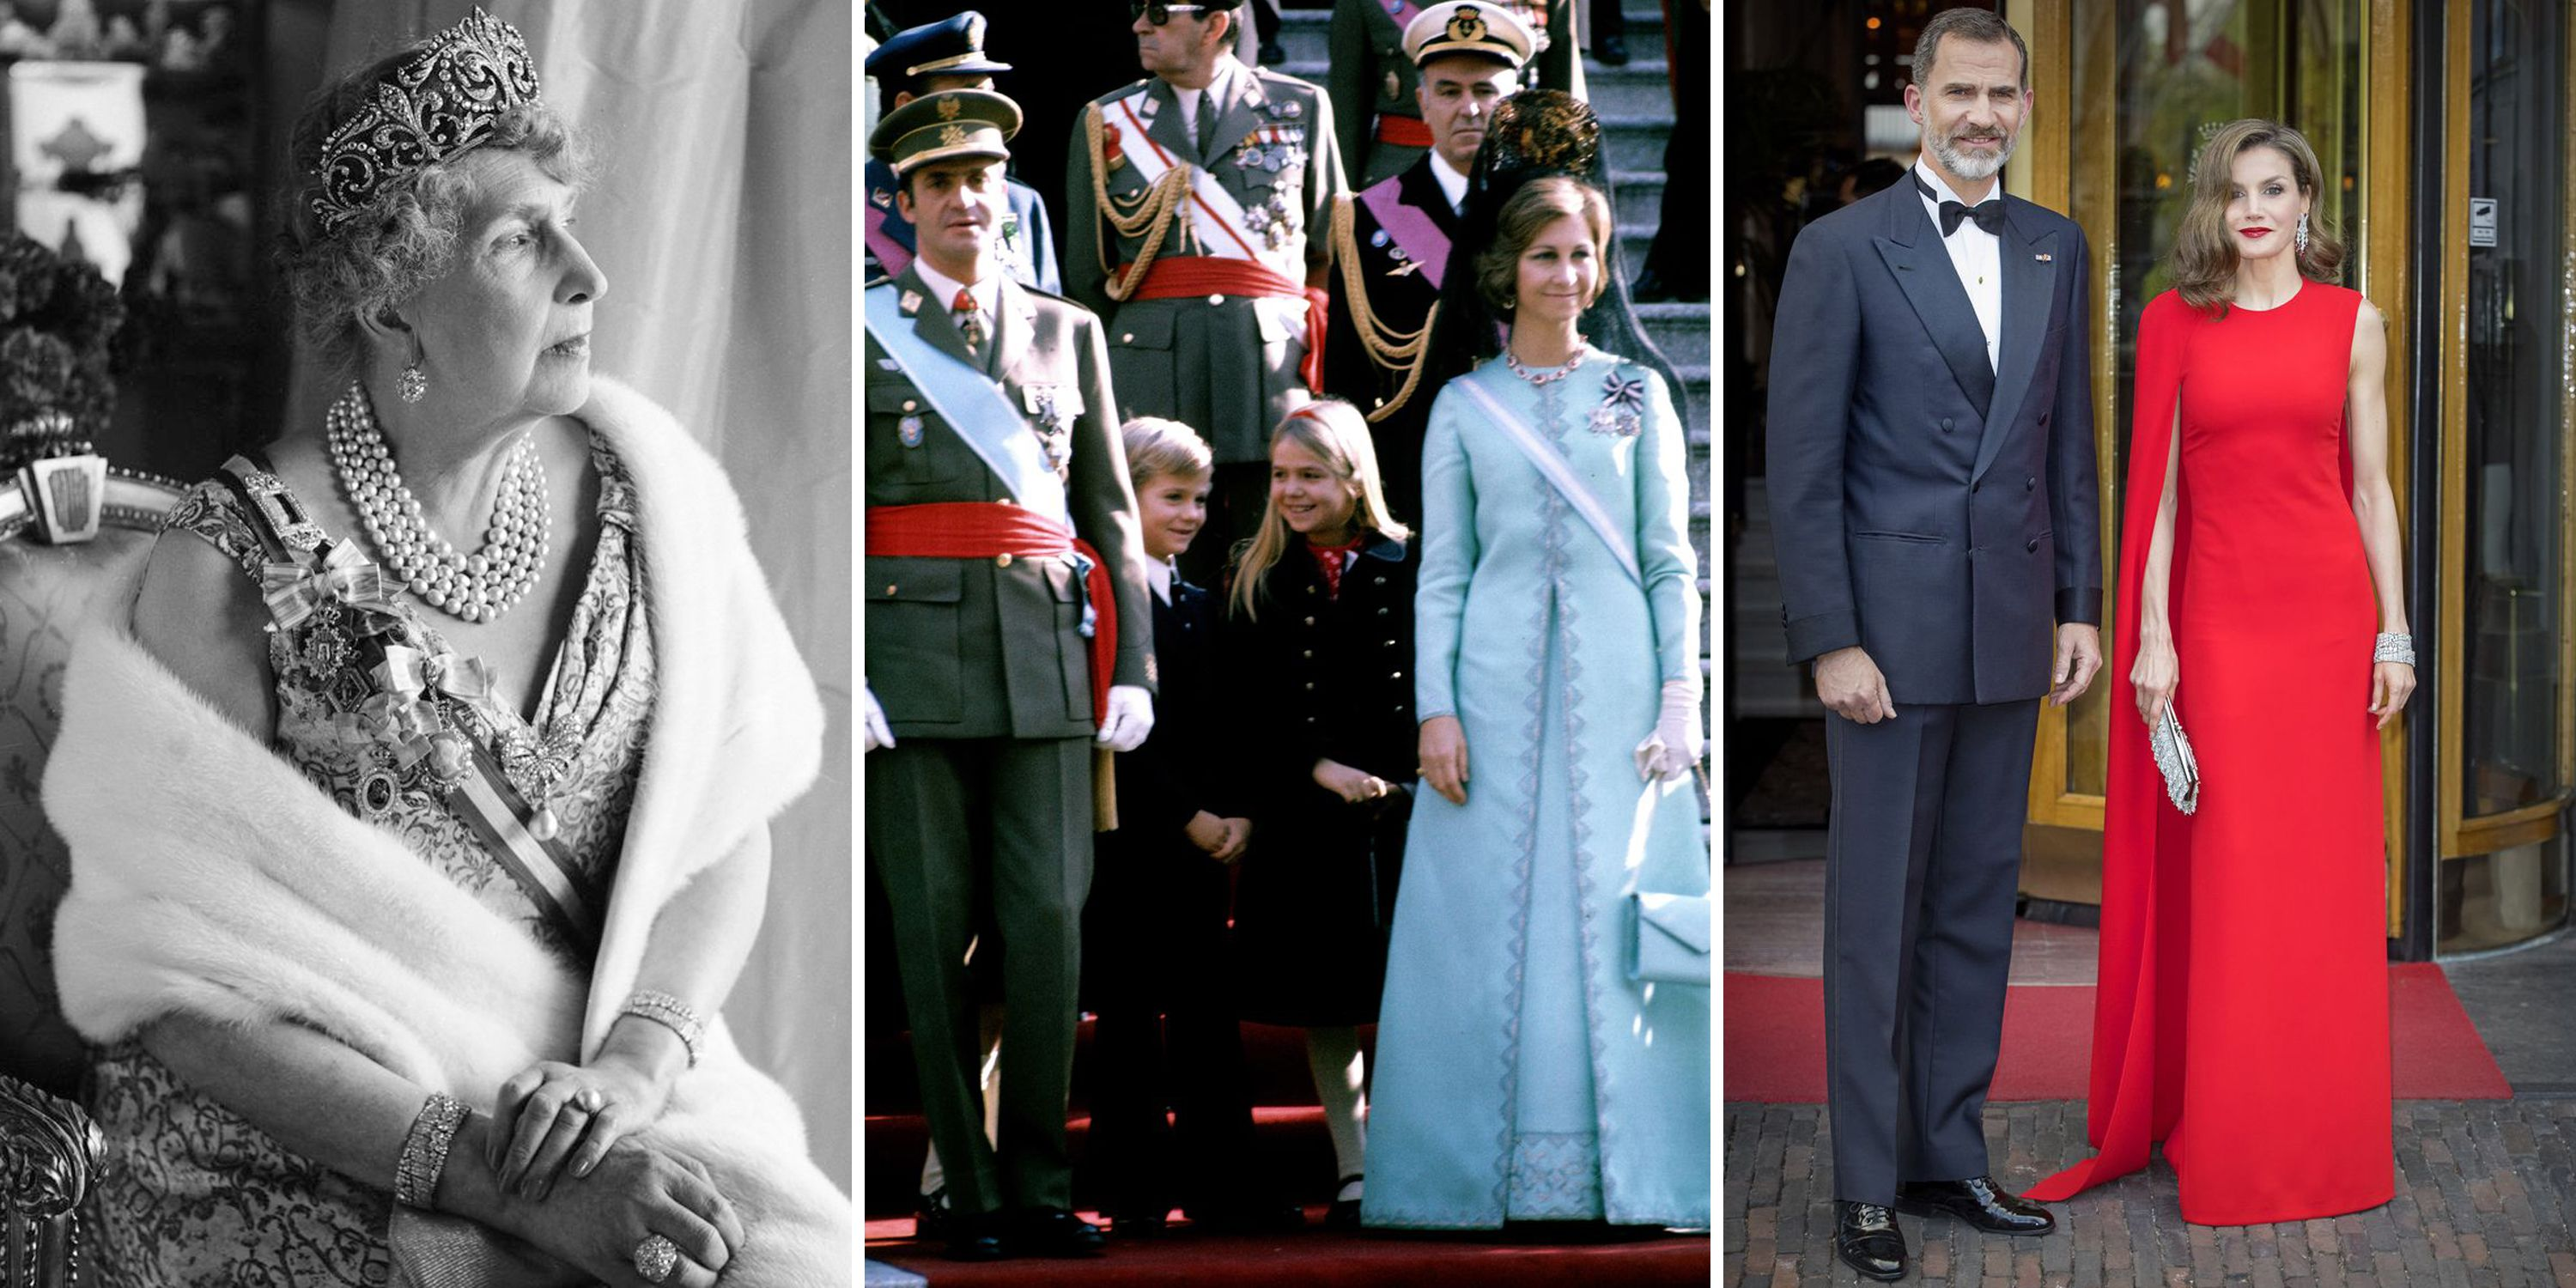 The Spanish Royal Family Through the Years